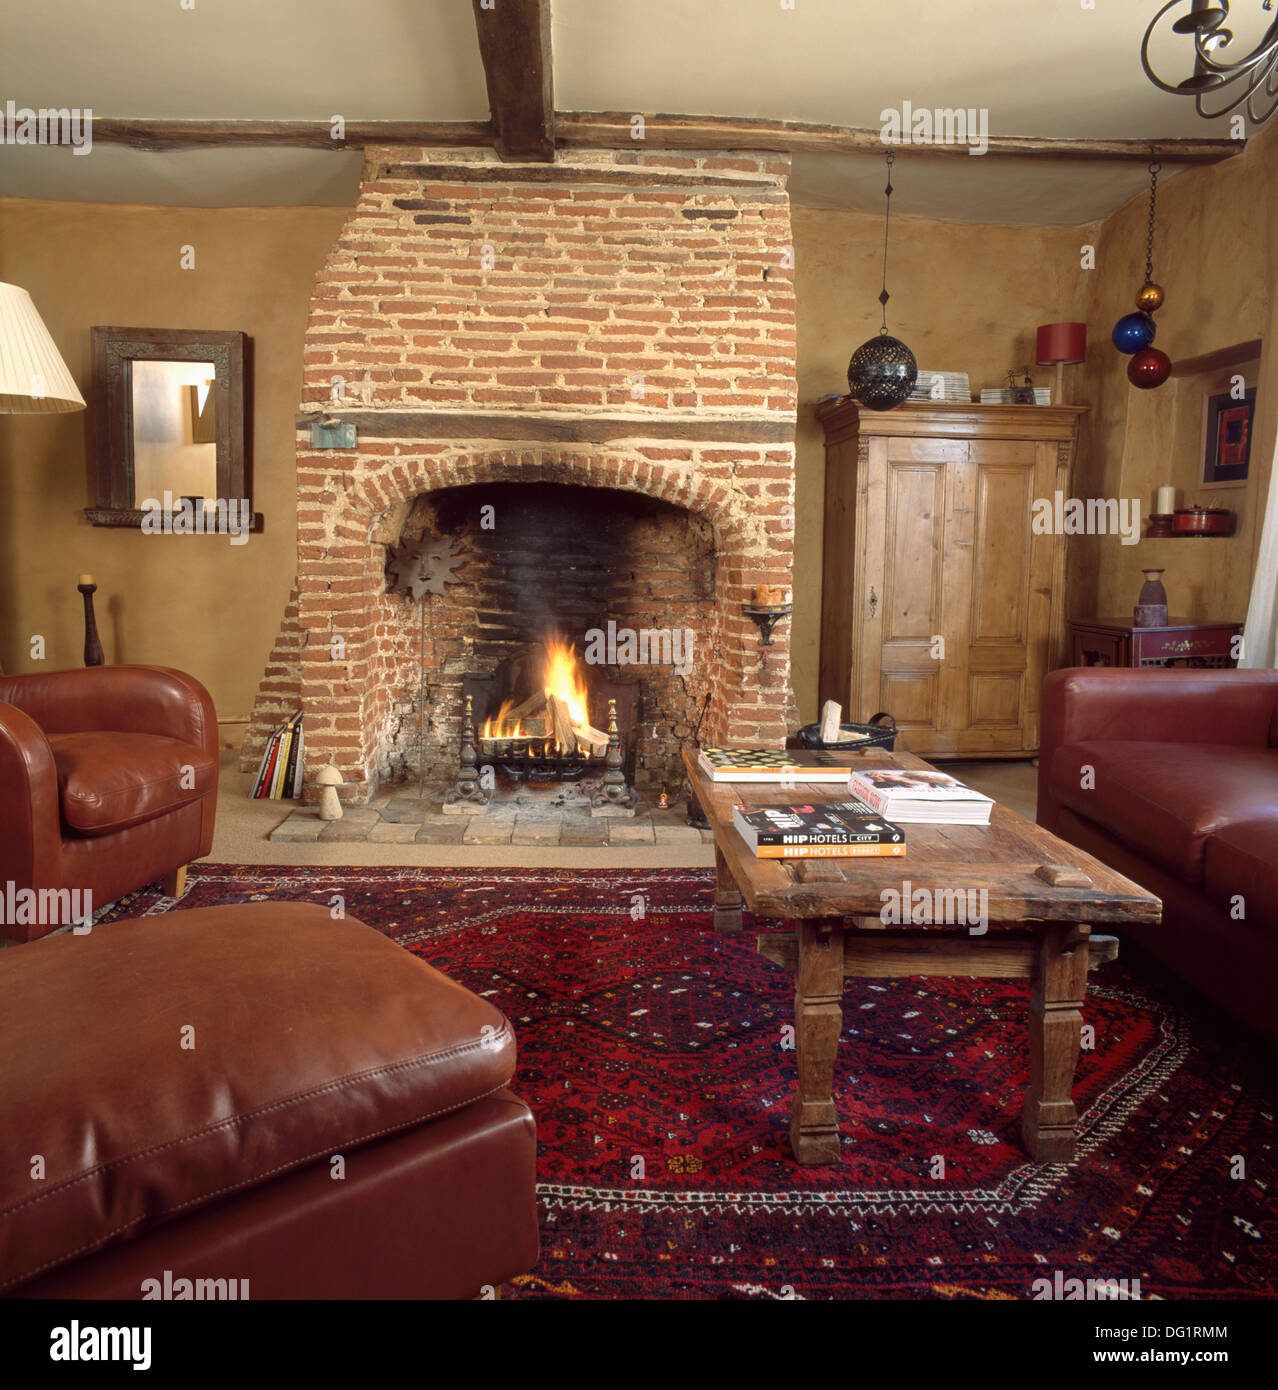 lighted fire in exposed brick fireplace in neutral country living